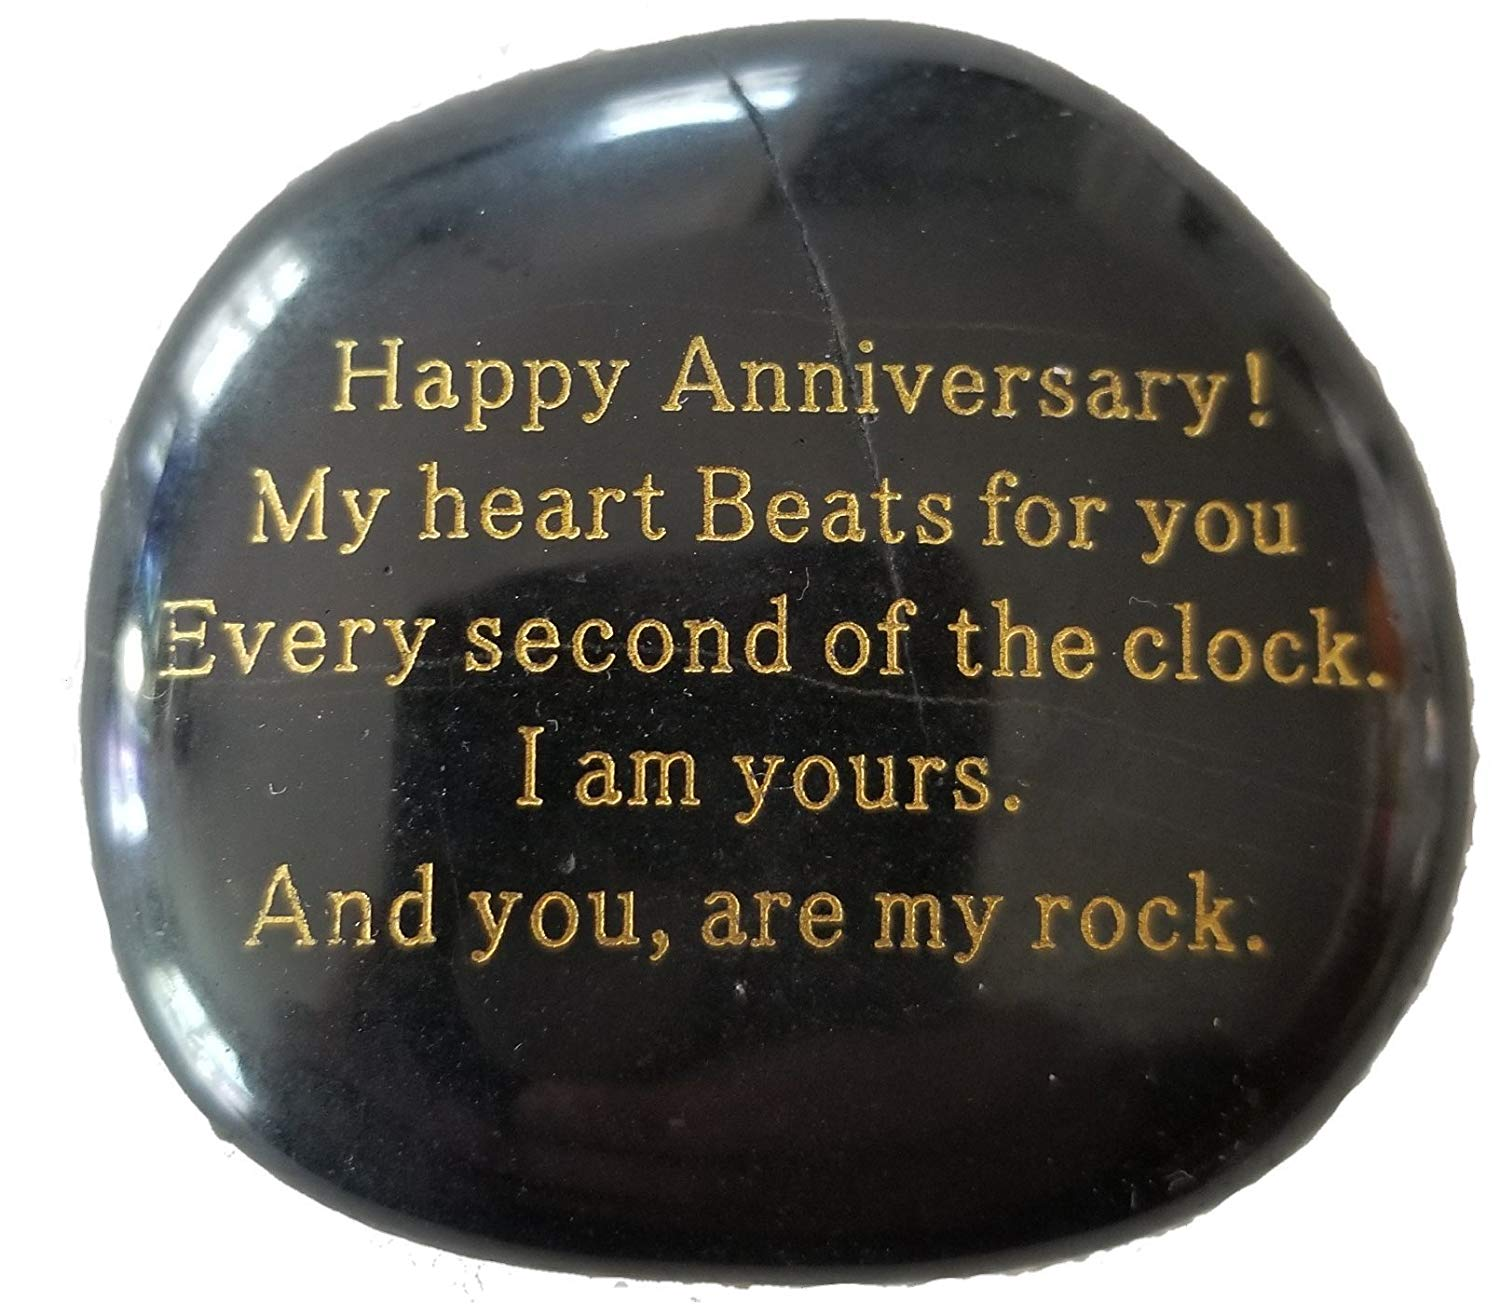 """Anniversary Gift""""Happy Anniversary! My heart Beats for you Every second of the clock. I am yours. And you, are my rock."""" Engraved Rock, Anniversary gifts for men or women."""